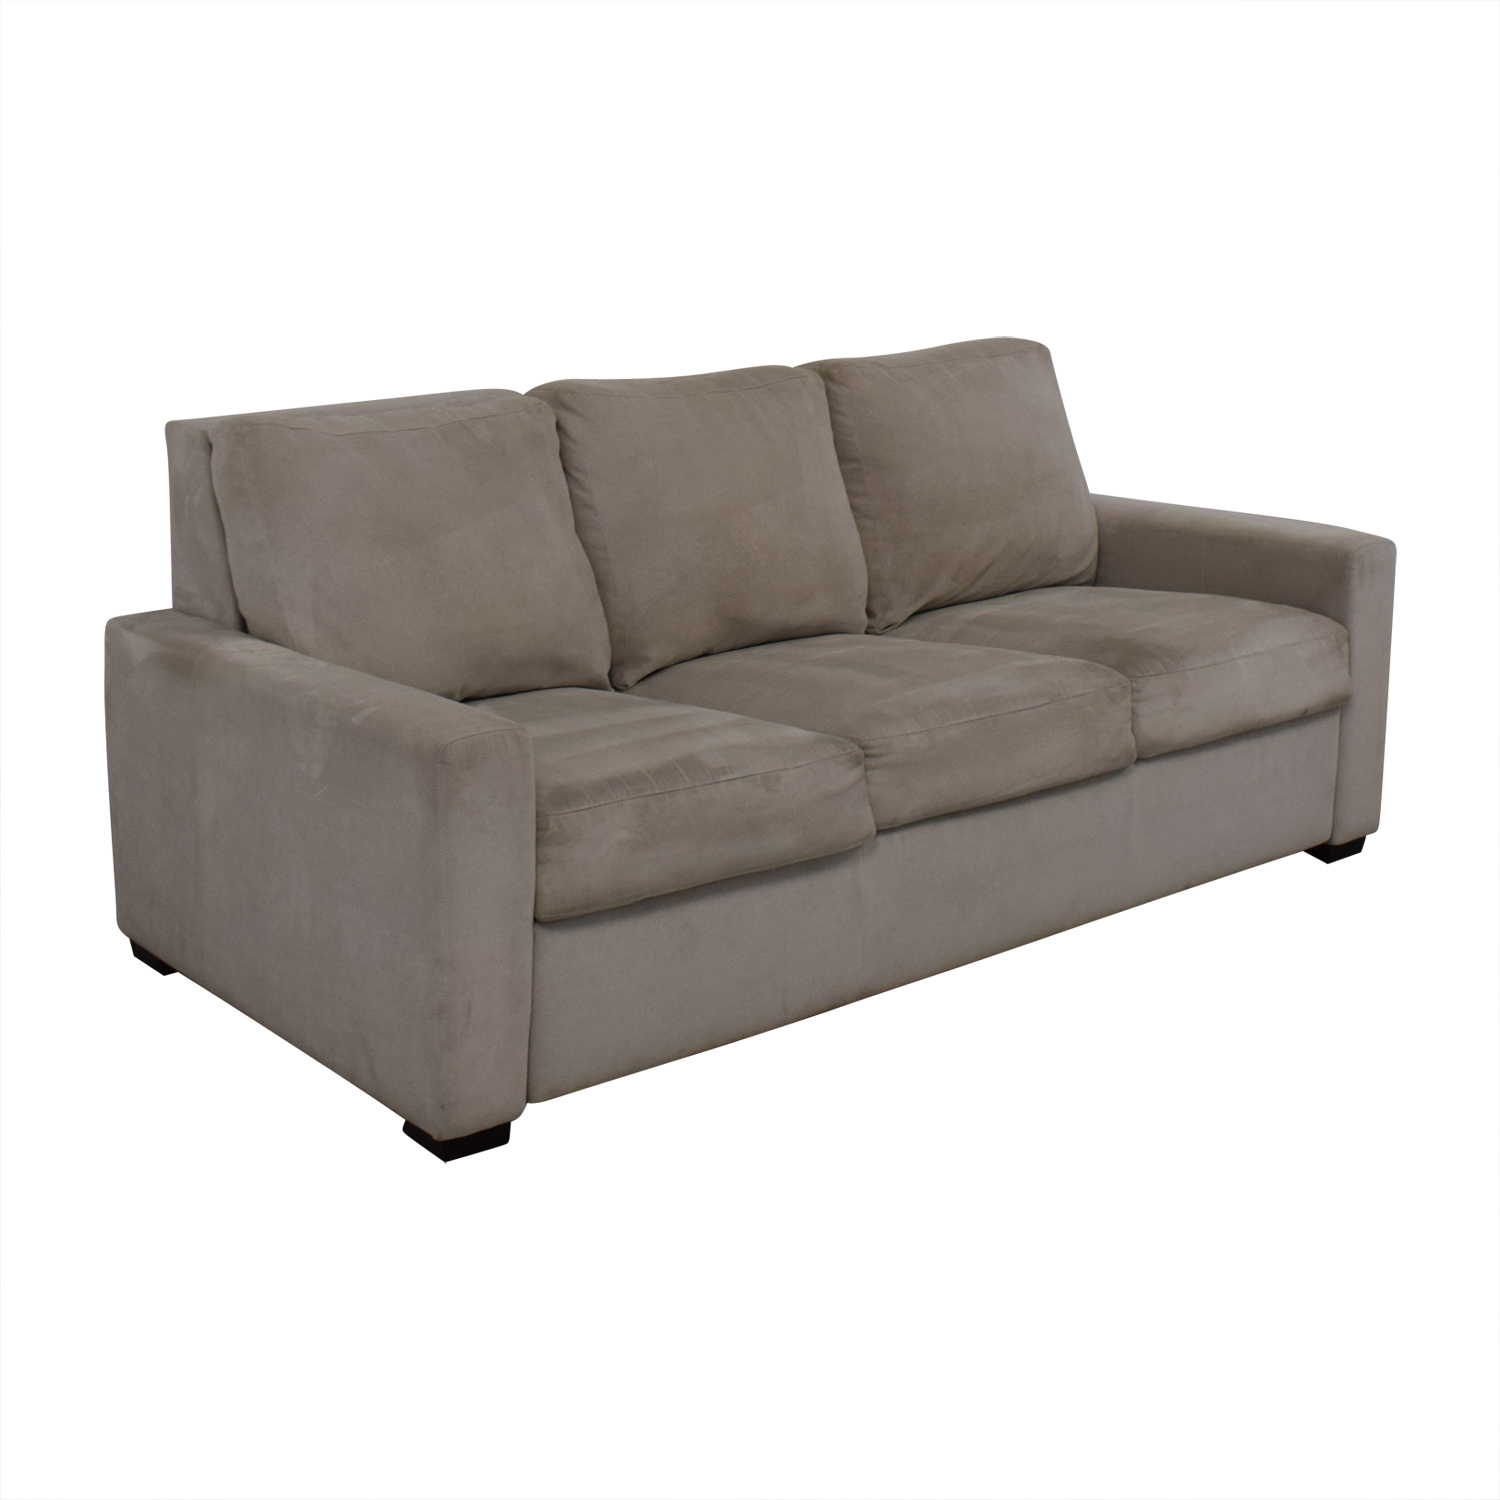 Room & Board Room & Board Three Cushion Sofa for sale